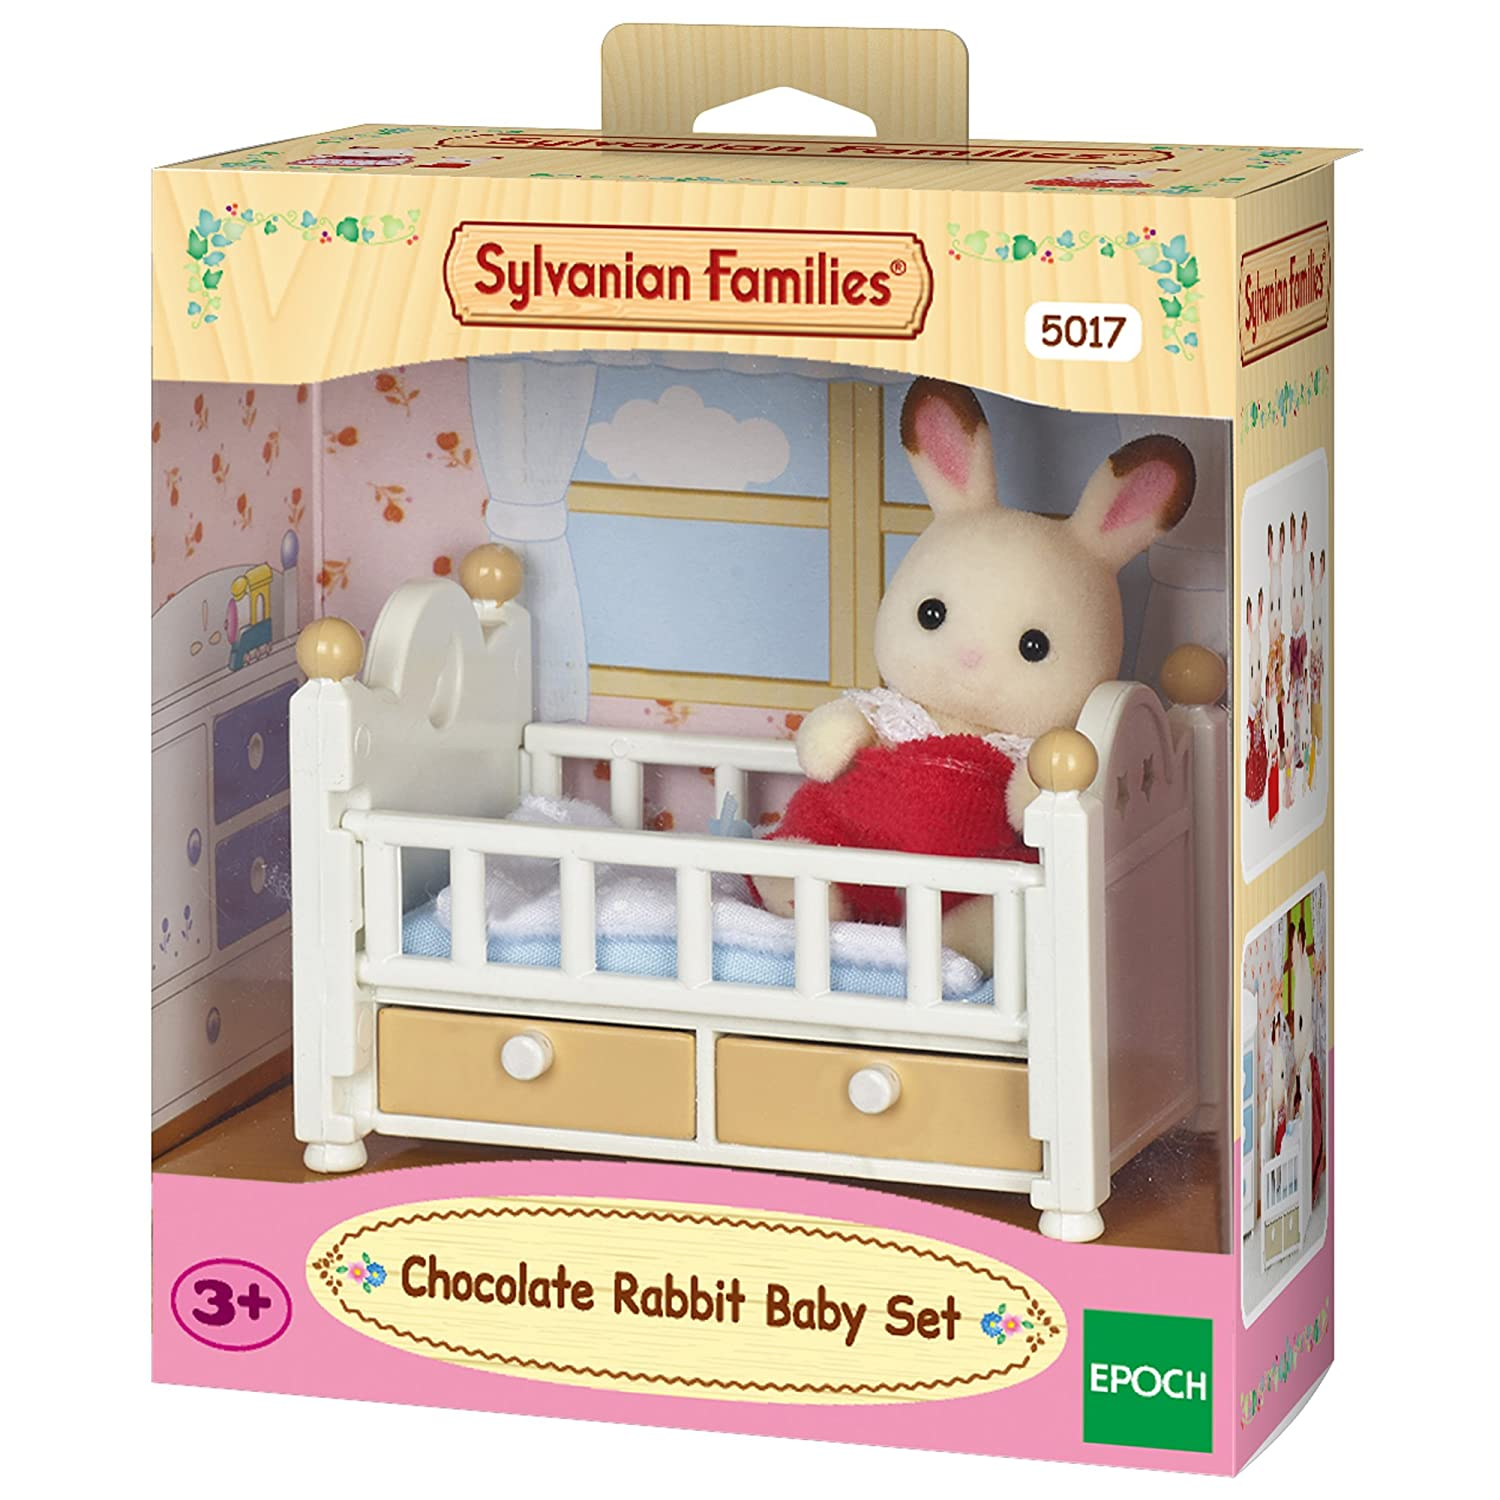 Sylvanian Families Chocolate Rabbit Baby Set Epoch 5017